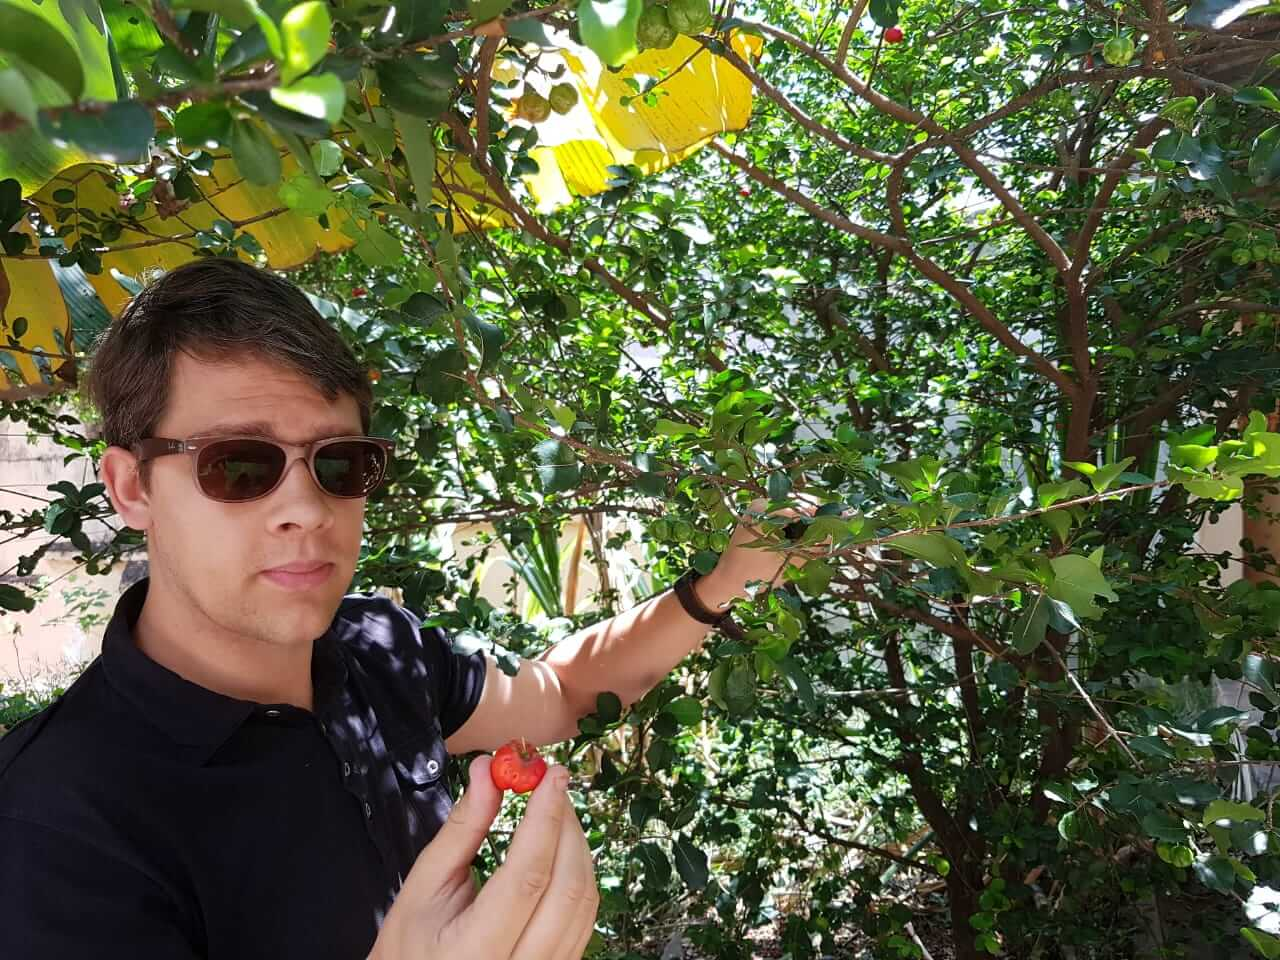 Arnaud Sion, Producer and researcher dacerola, tells you everything to buy the best organic acerola cherry from Brazil- Acerola wholesaler